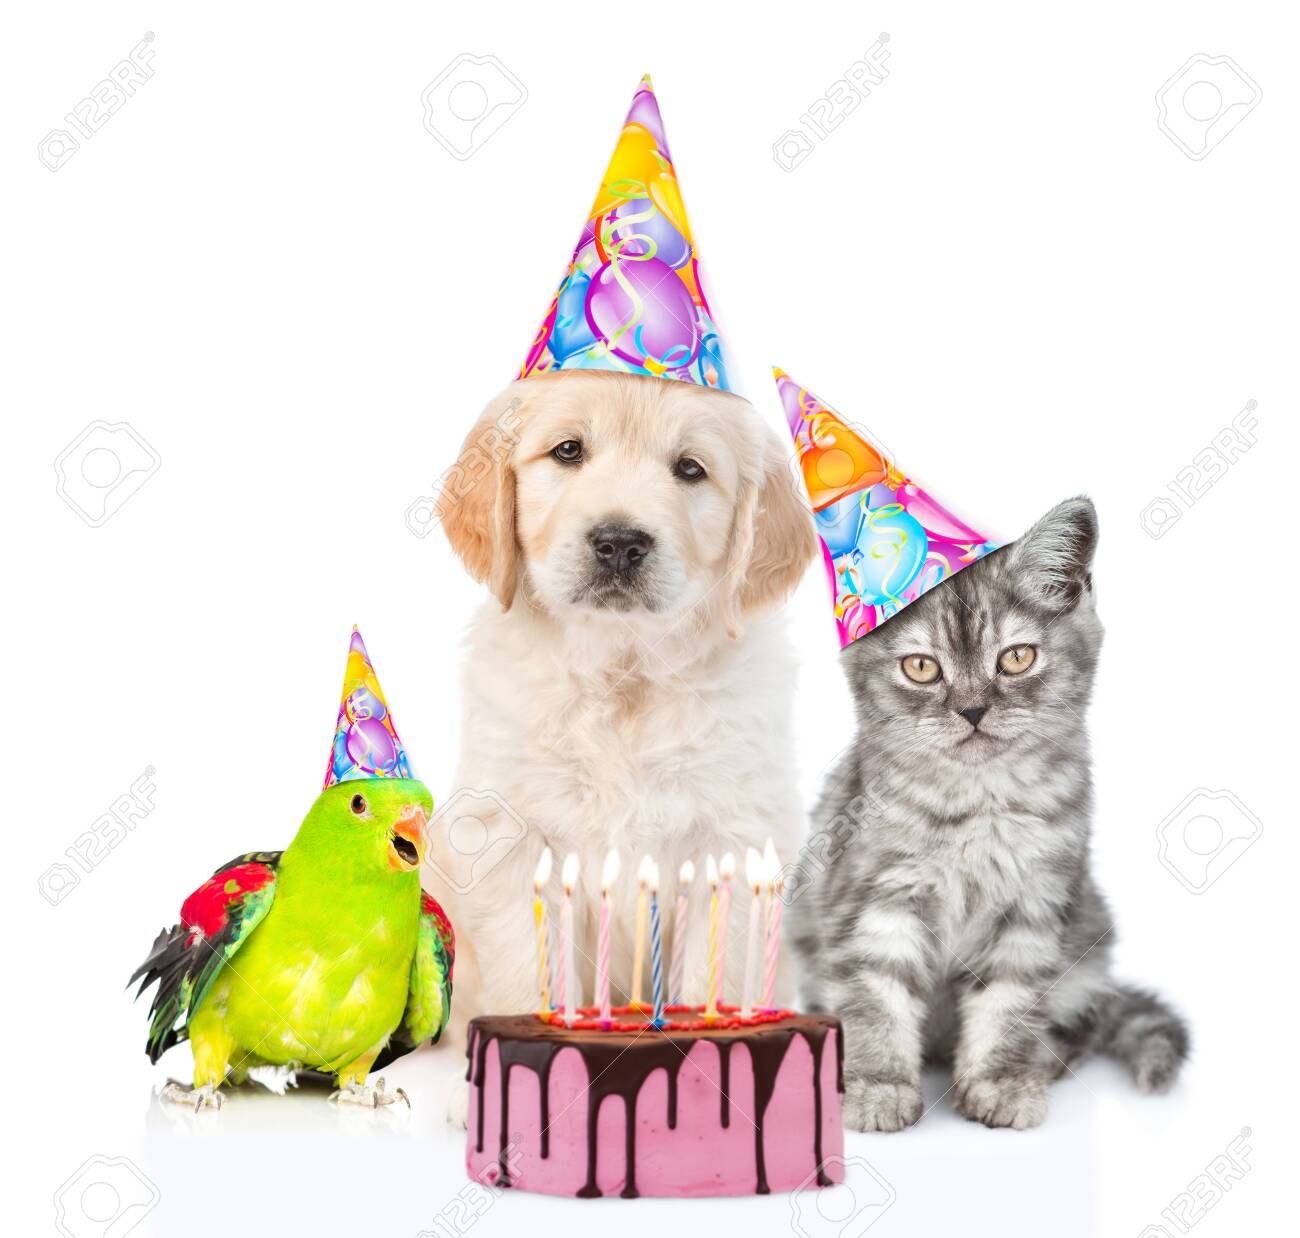 Awe Inspiring Cat Dog And Parrot In Birthday Hats Sitting With Birthday Cake Funny Birthday Cards Online Alyptdamsfinfo